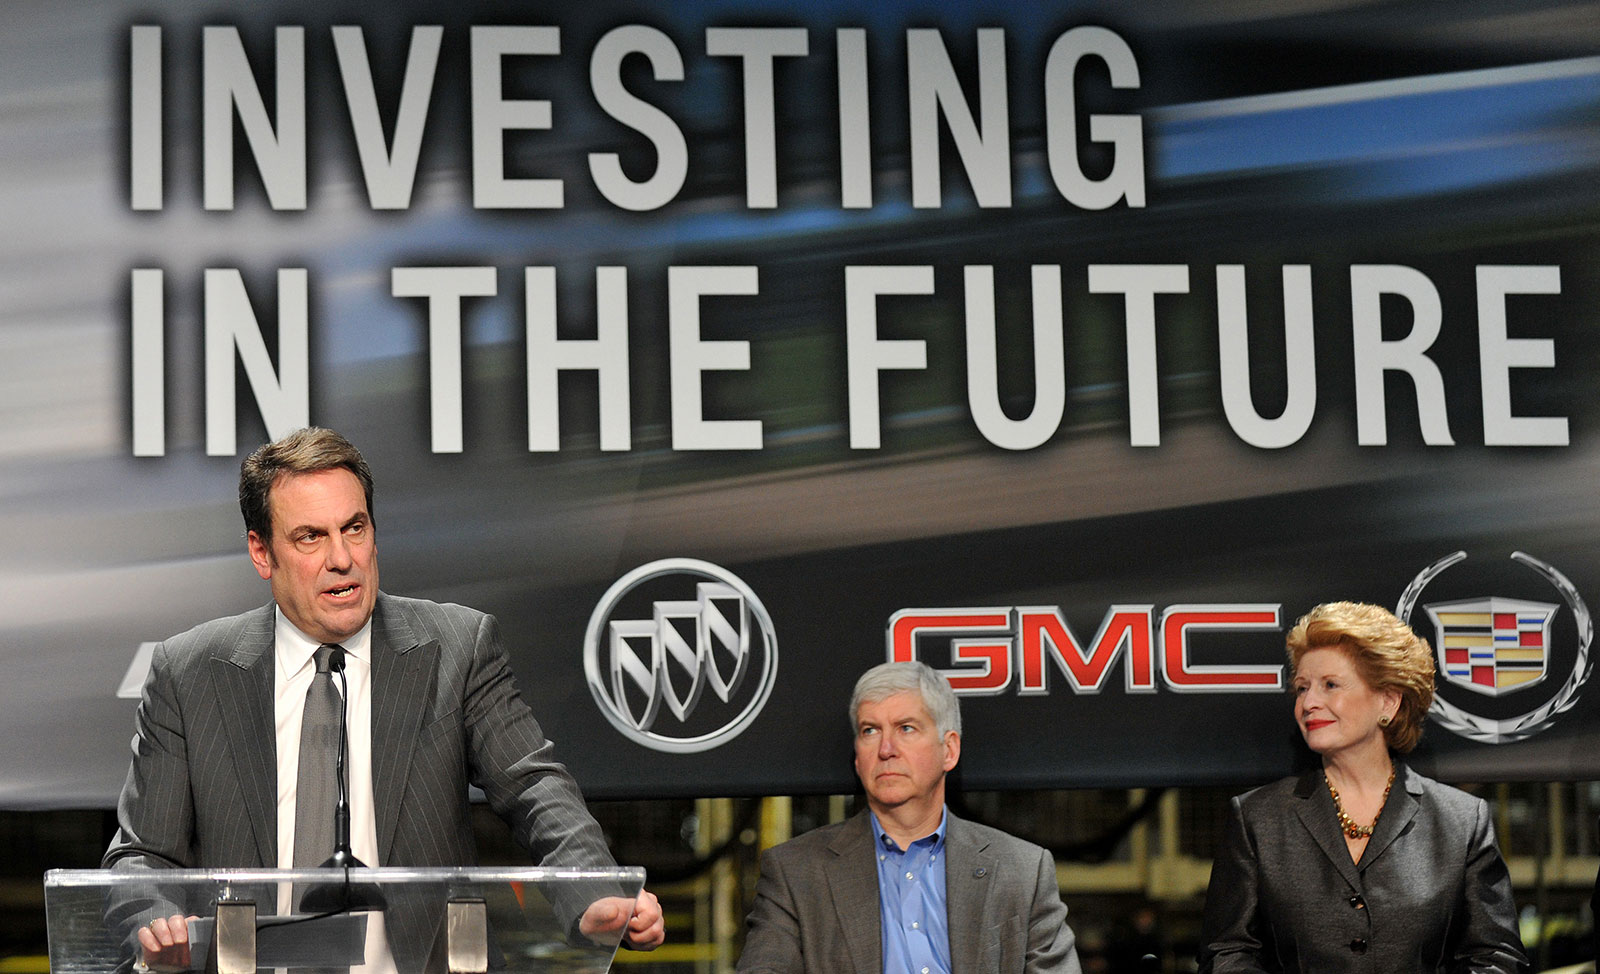 GM spends big money to partner